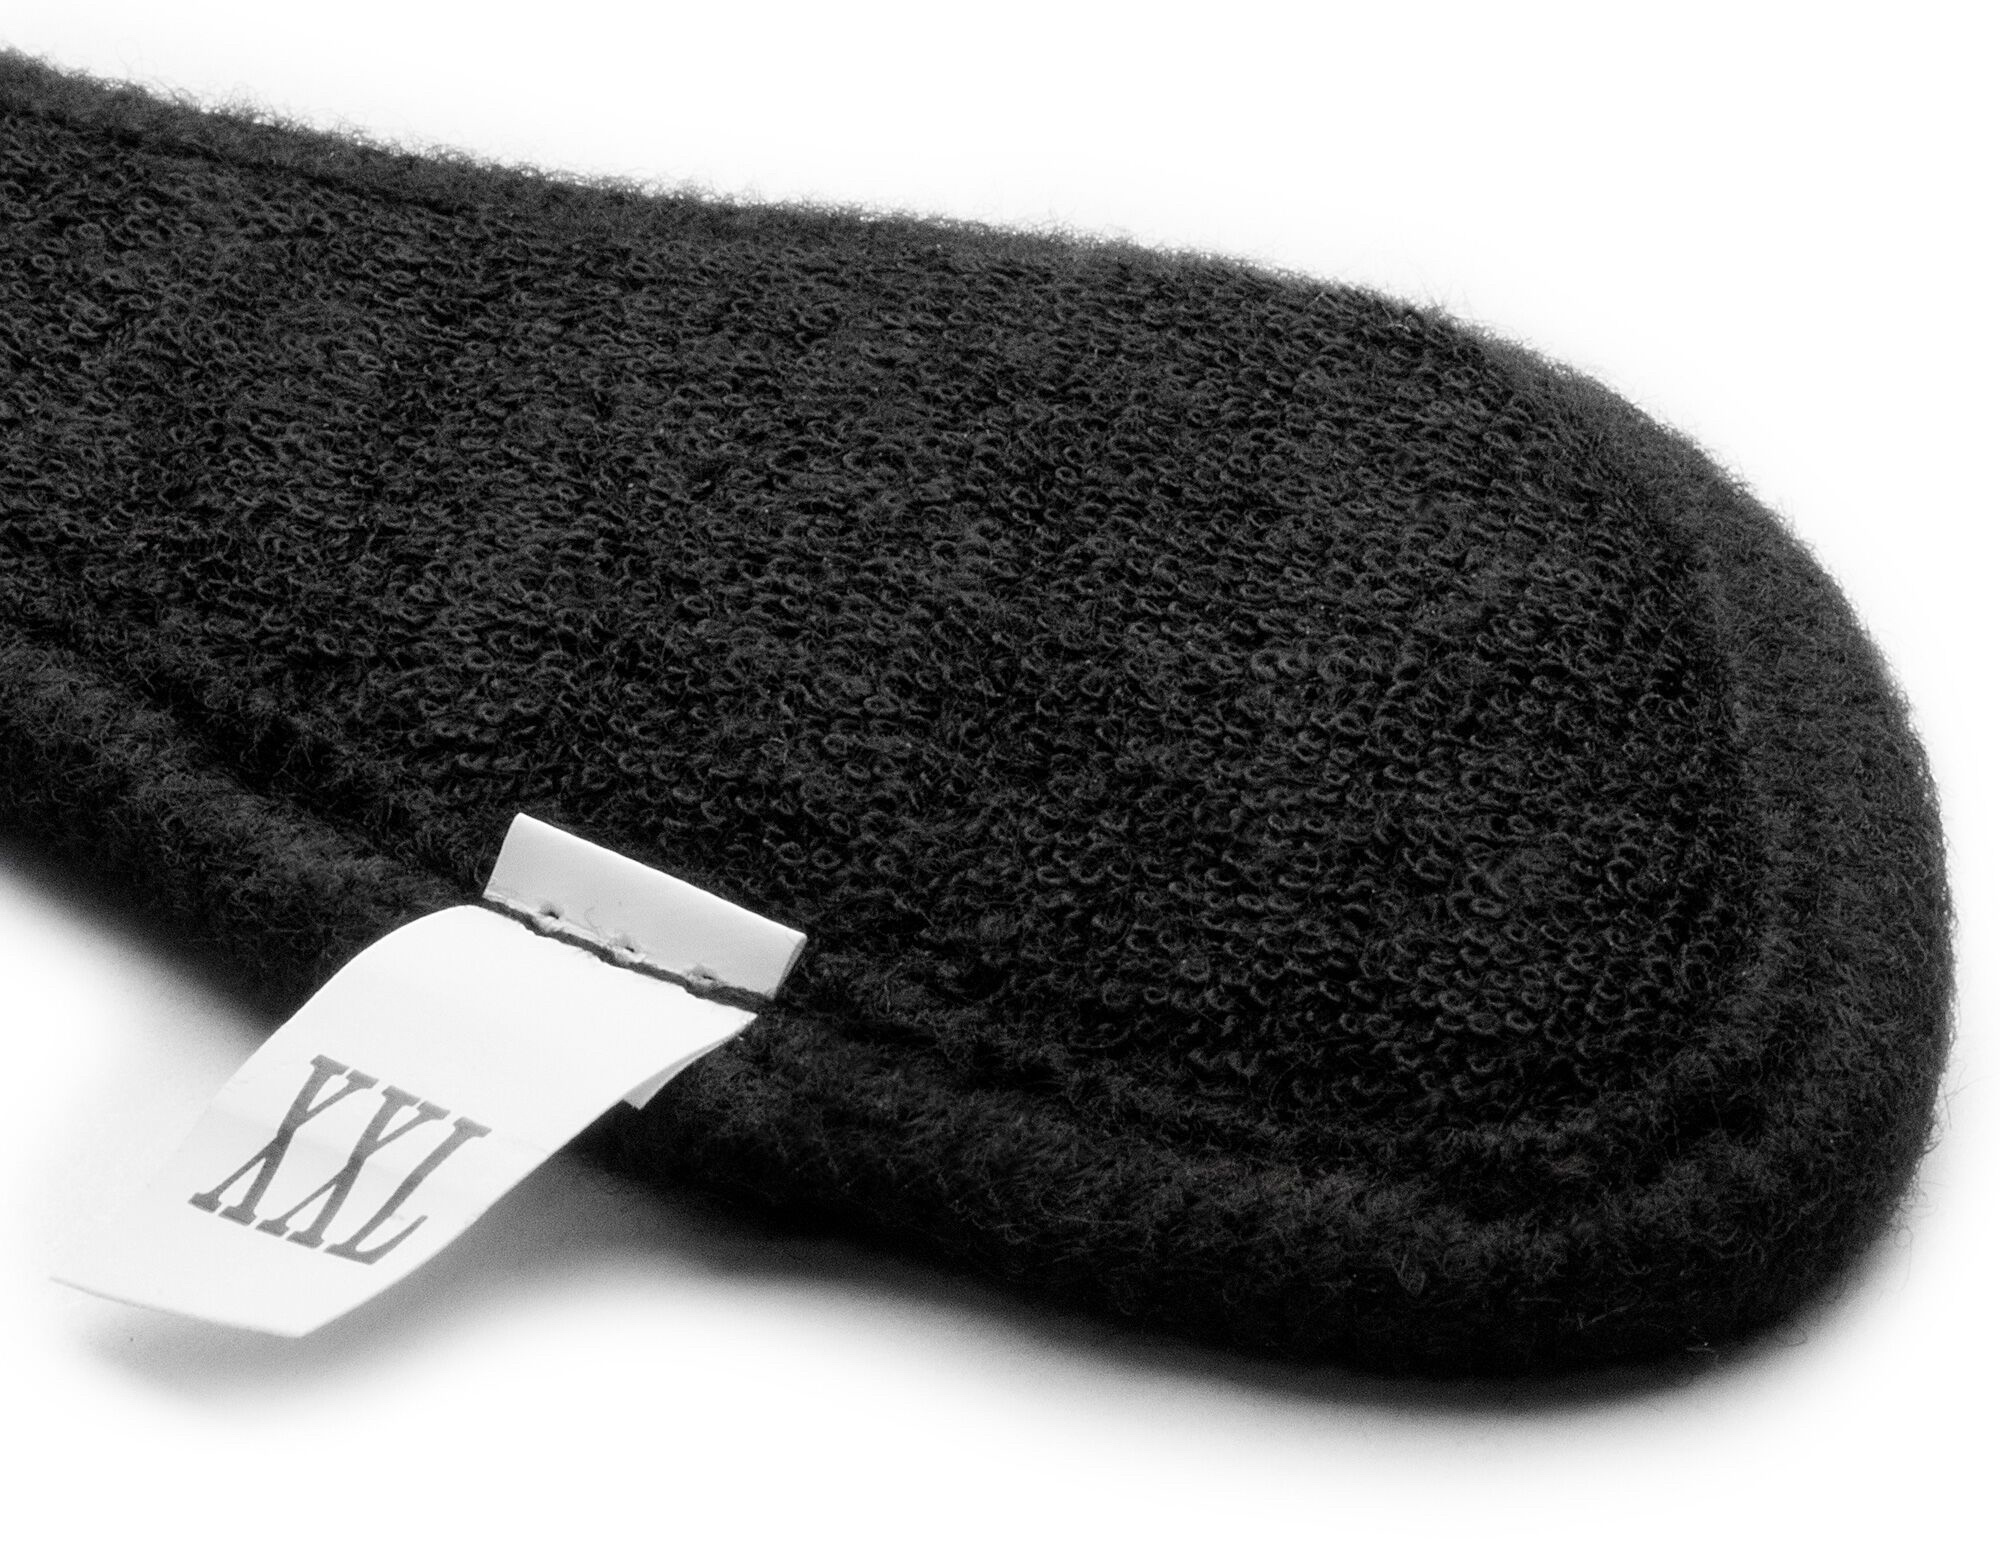 S-1 Lifer Terry Cloth Liner